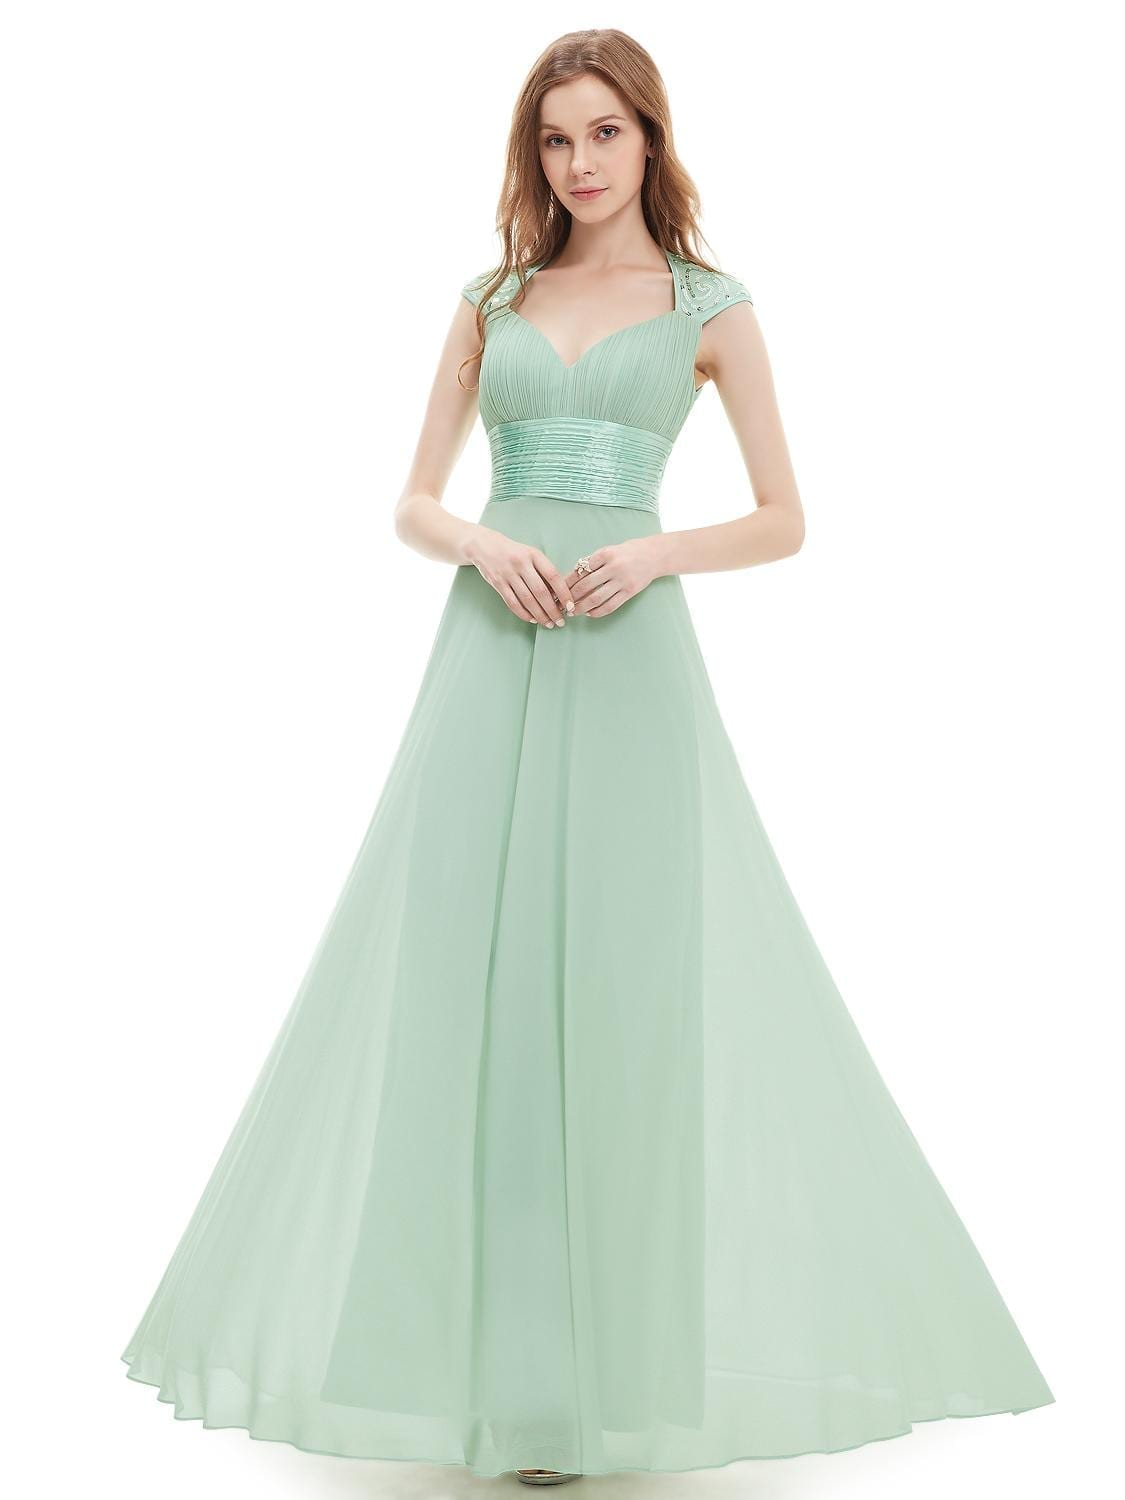 V neck sequins chiffon ruffles empire line evening bridesmaid v neck sequins chiffon ruffles empire line evening bridesmaid dress ombrellifo Gallery